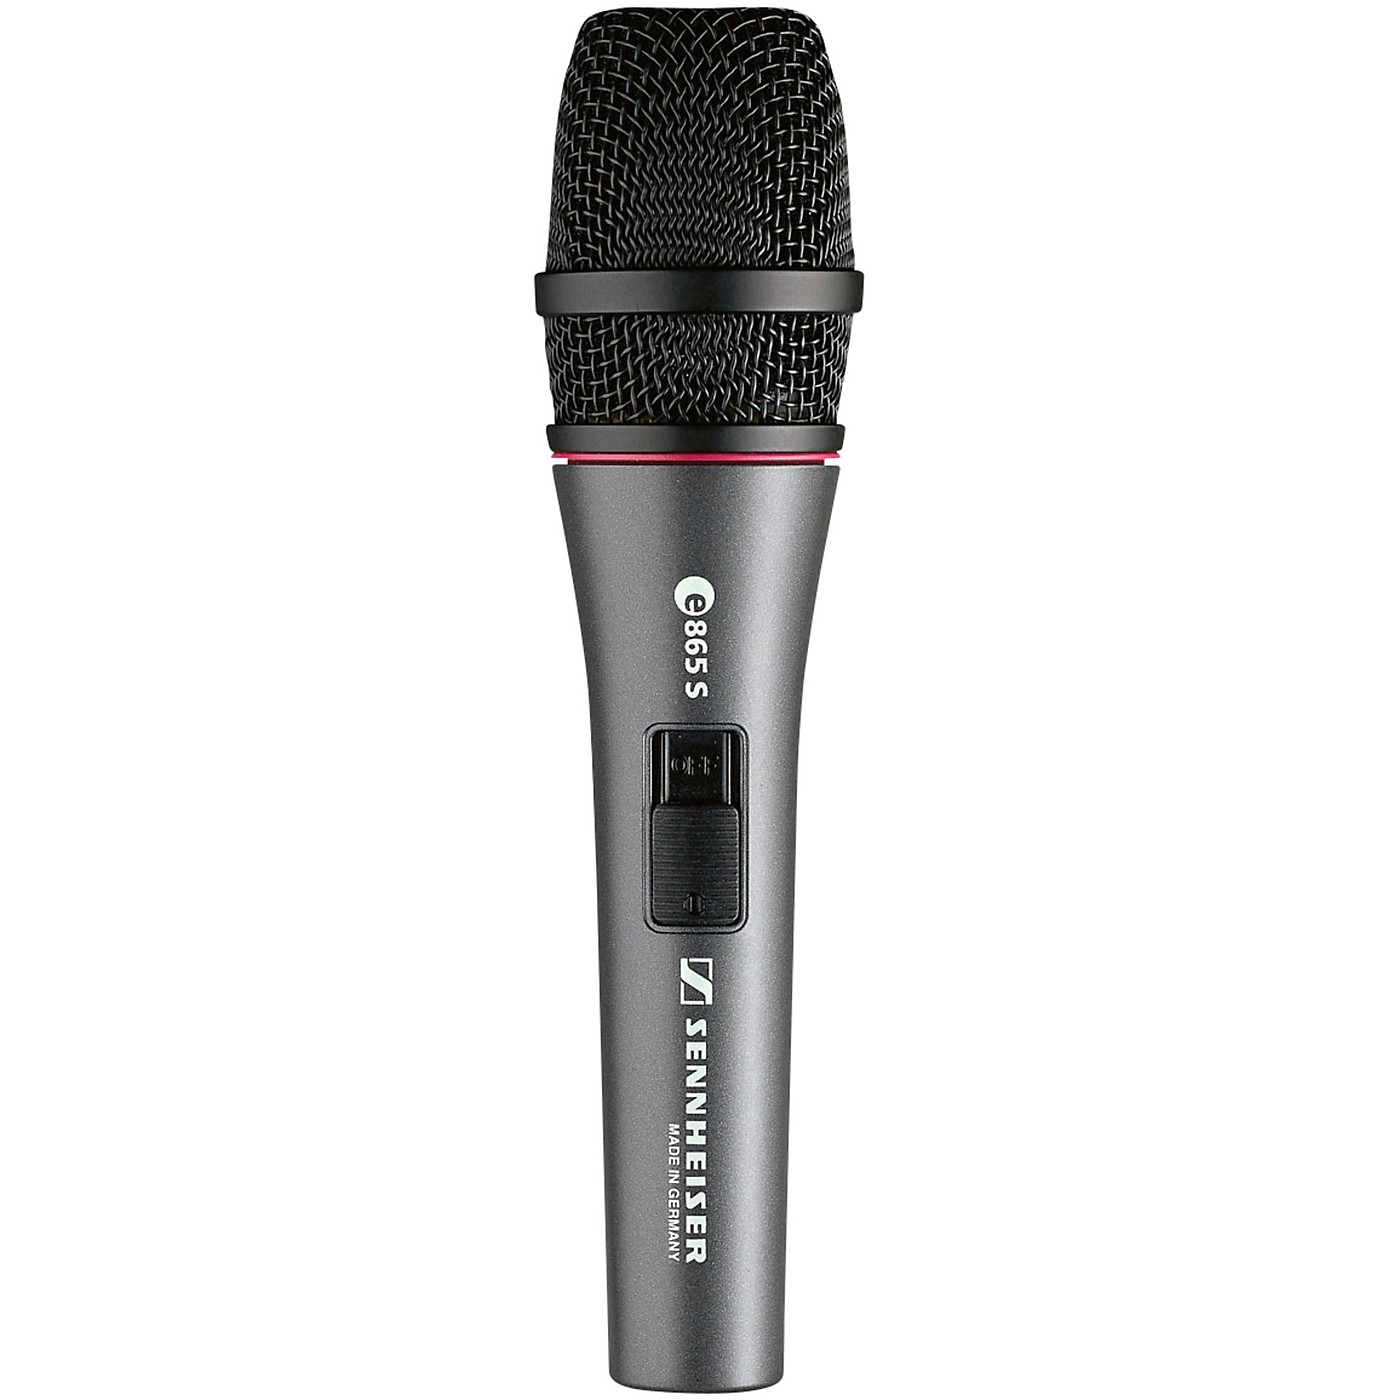 Sennheiser e 865S Condenser Vocal Microphone with Switch thumbnail